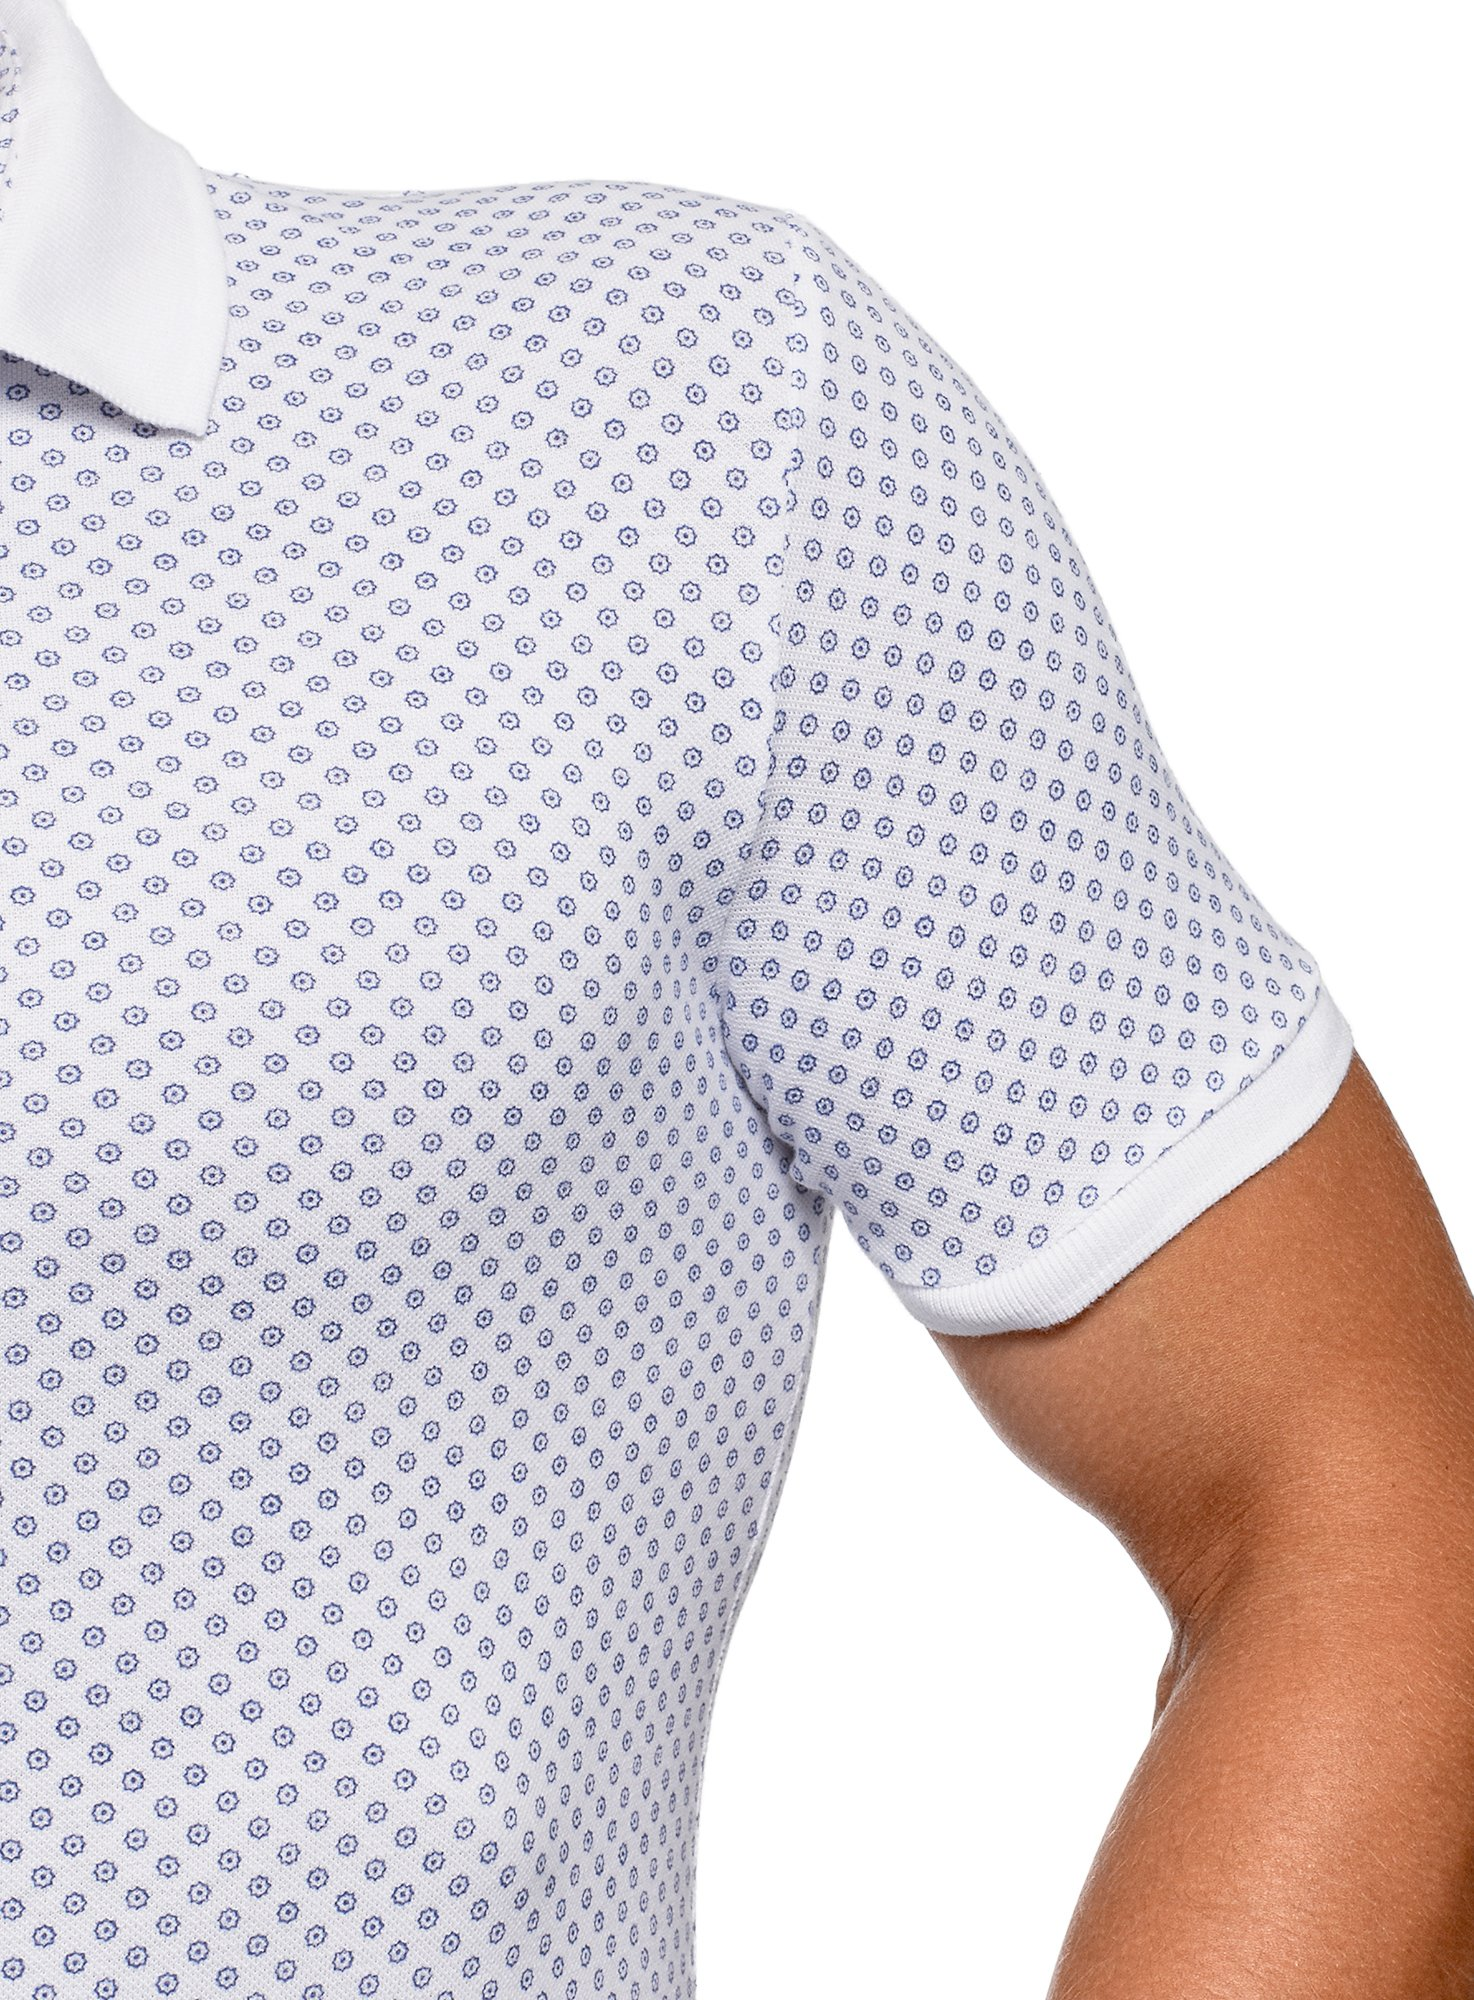 oodji Ultra Men's Pique Polo Shirt with Fine Graphic Print, White, US 40 / EU 50 / M by oodji (Image #2)